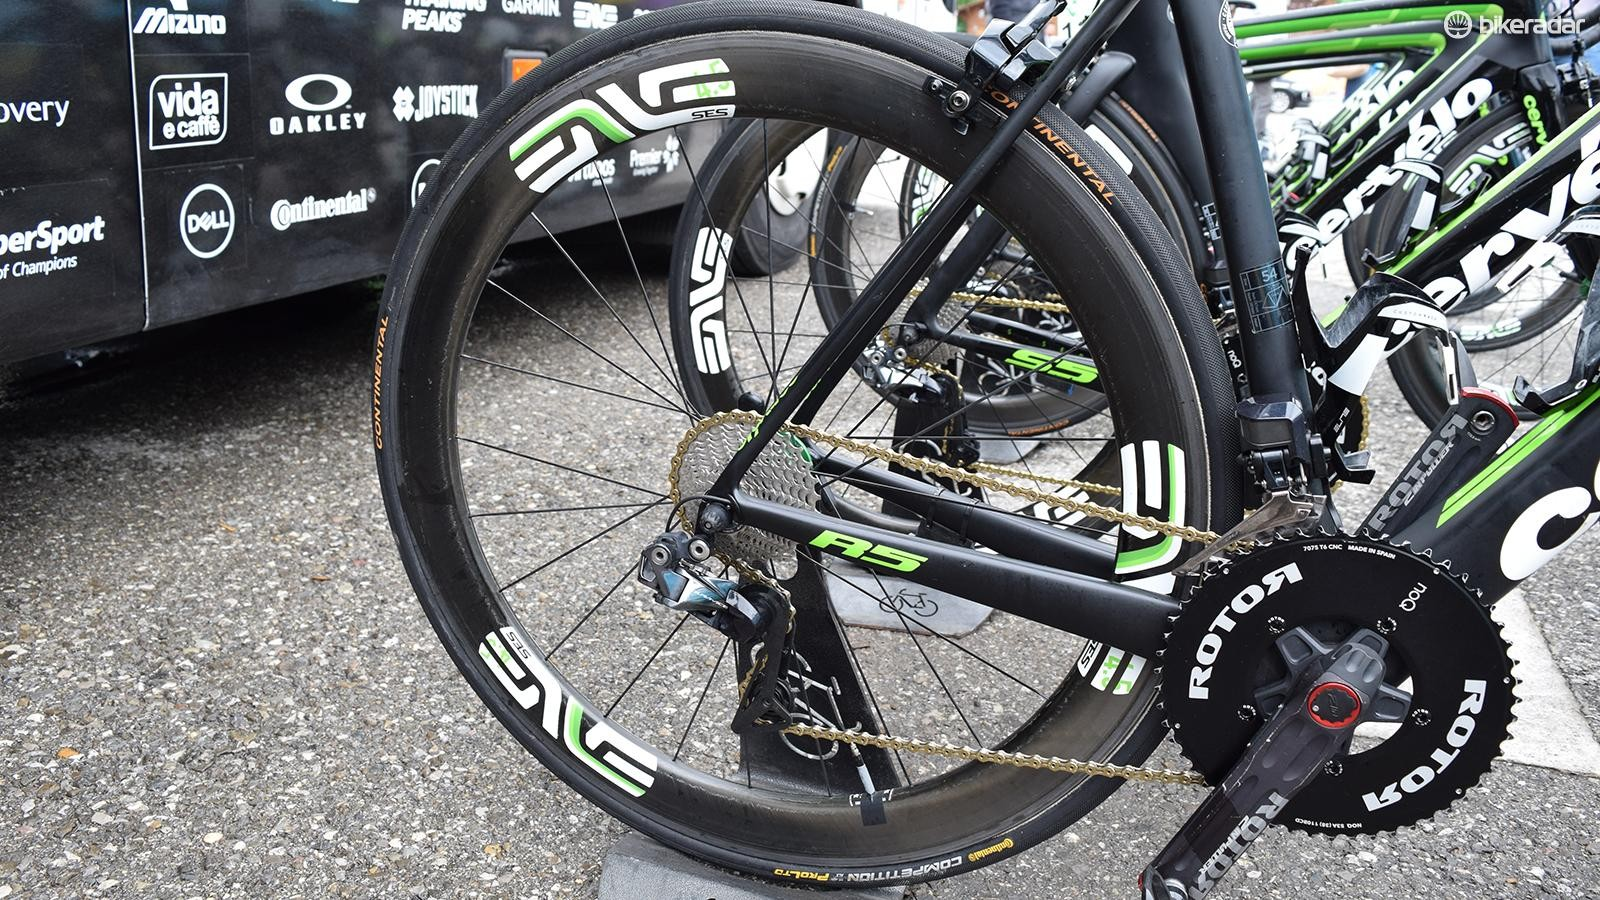 The team's ENVE 4.5 SES wheels have flashes of green on the decals in line with Dimension Data's team colours